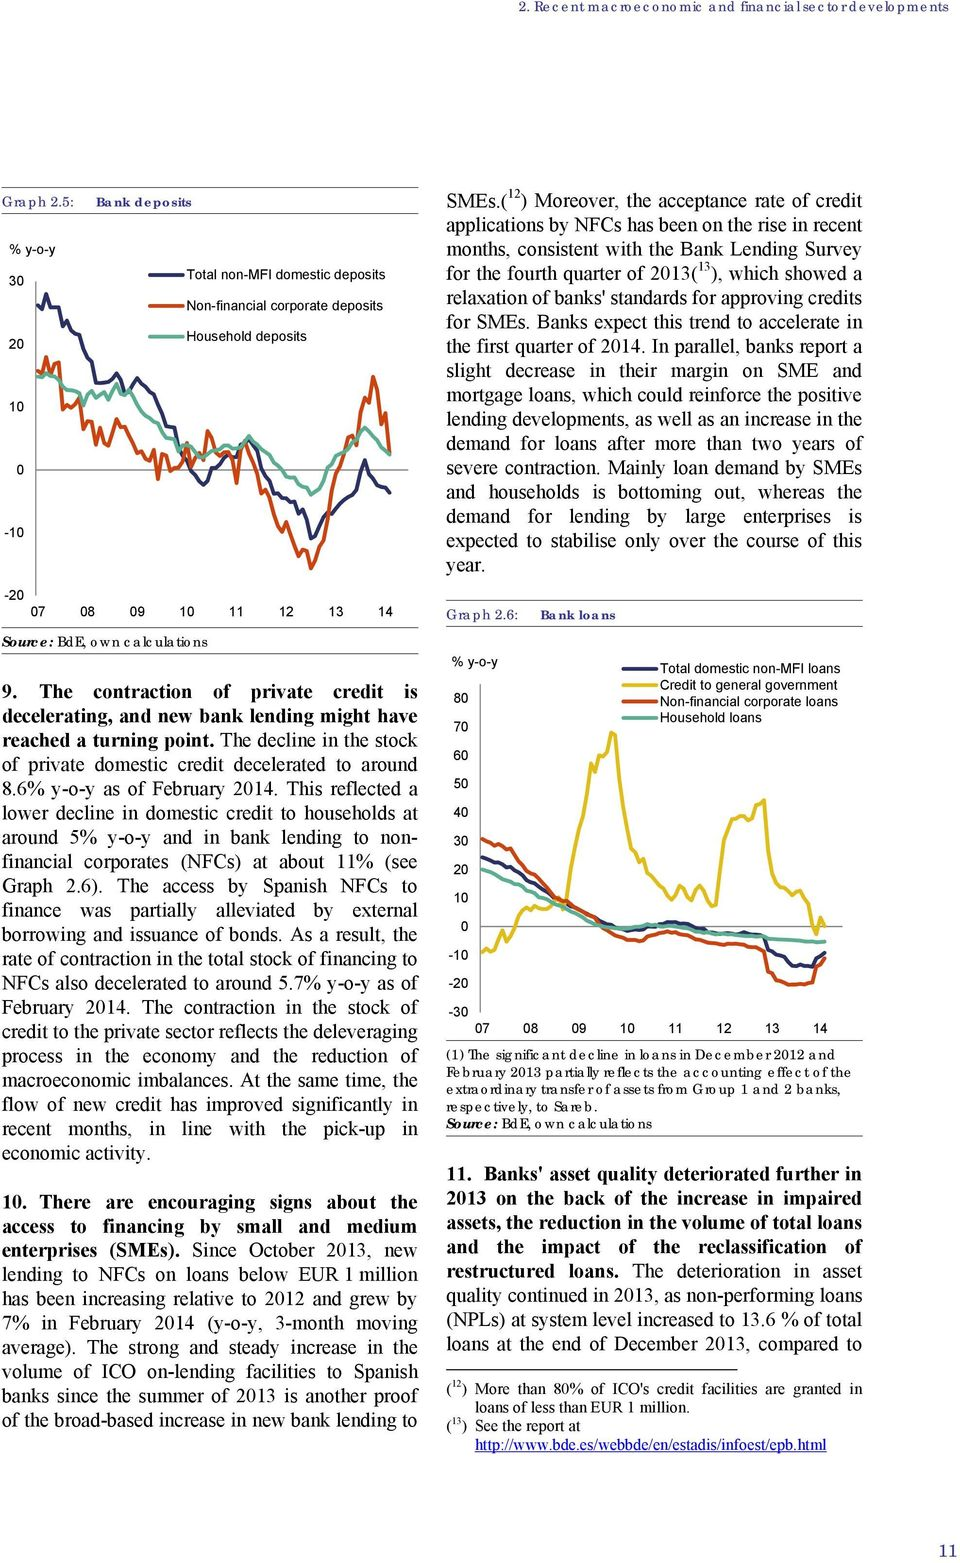 The contraction of private credit is decelerating, and new bank lending might have reached a turning point. The decline in the stock of private domestic credit decelerated to around 8.